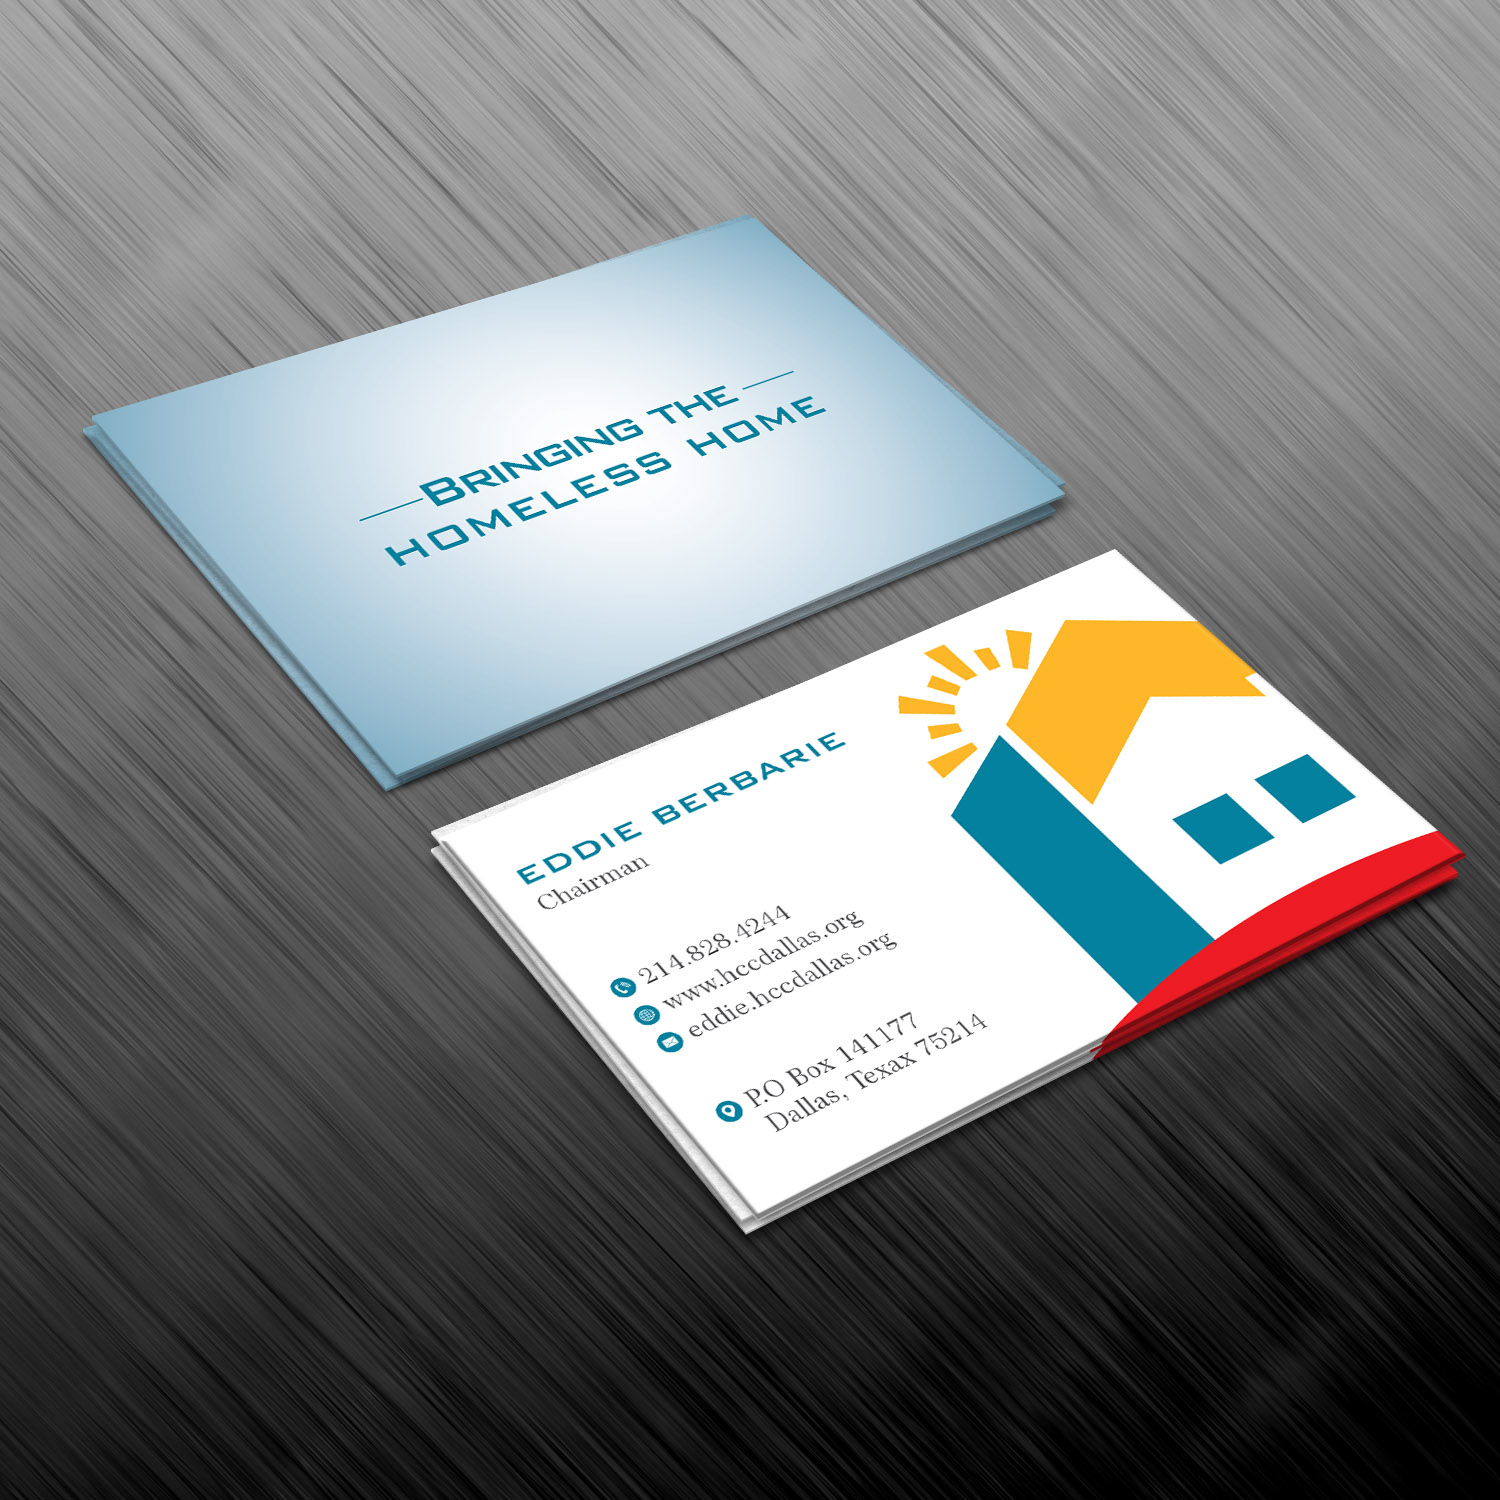 Colorful serious non profit business card design for housing business card design by creative jiniya for housing crisis center design 17986164 colourmoves